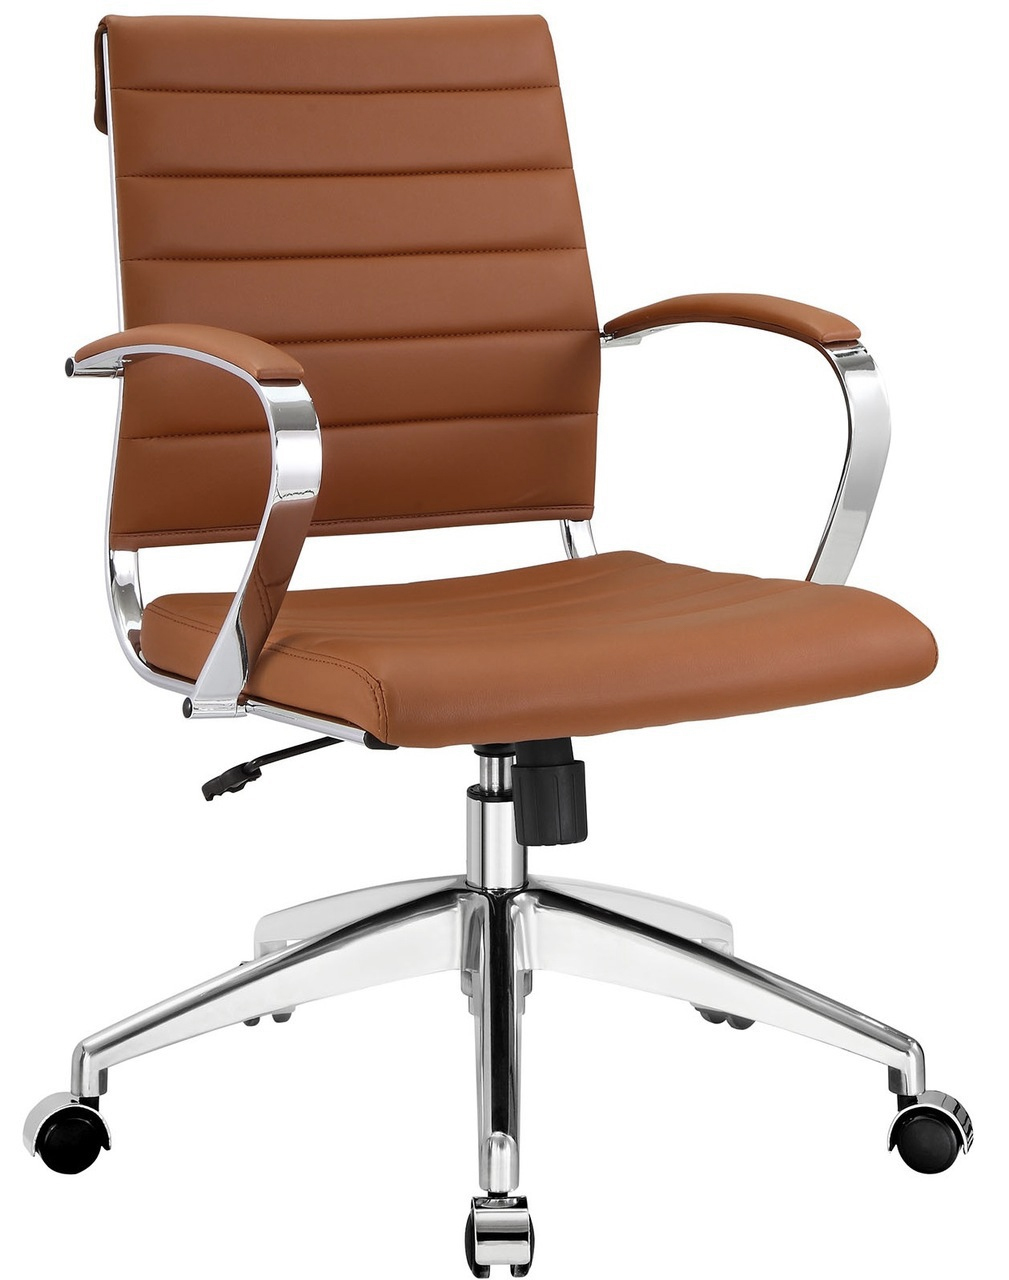 Tan leather office chair -  Aria Low Back Tan Color 1 Jpg